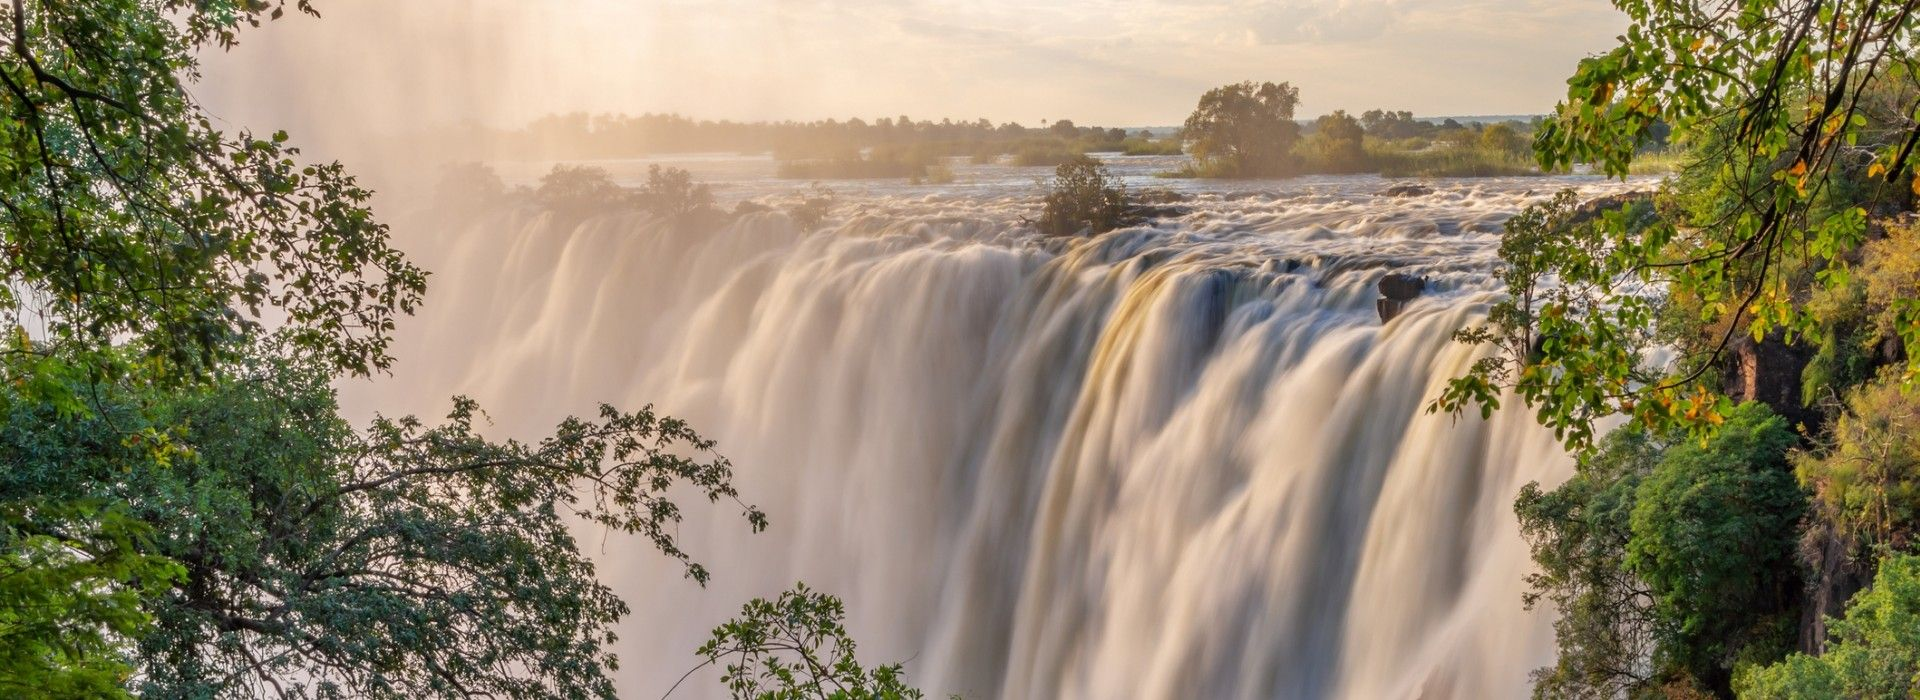 National parks Tours in East Africa